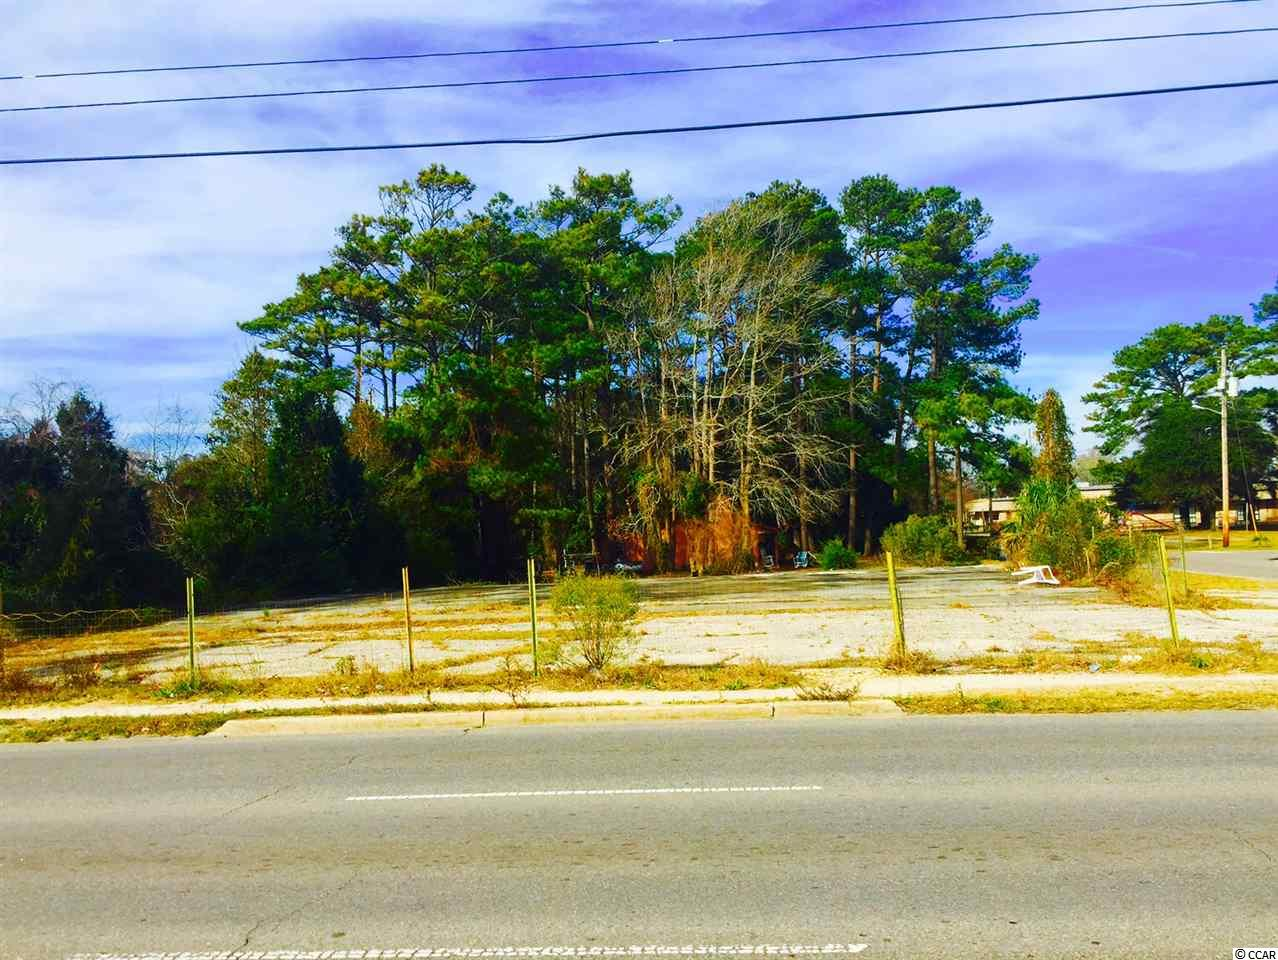 Nice Commercial Lot with direct frontage on Hwy 17 in North Myrtle Beach, SC Perfect for Drive thru Restaurant, Ice Cream Parlor, Retail Store, Convenient store, Car Lot, Real Estate Office. Excellent location just North of Hugely popular Barefoot Resort Community and Windy Hill Beach. This is a great opportunity to build your new business at the beach.